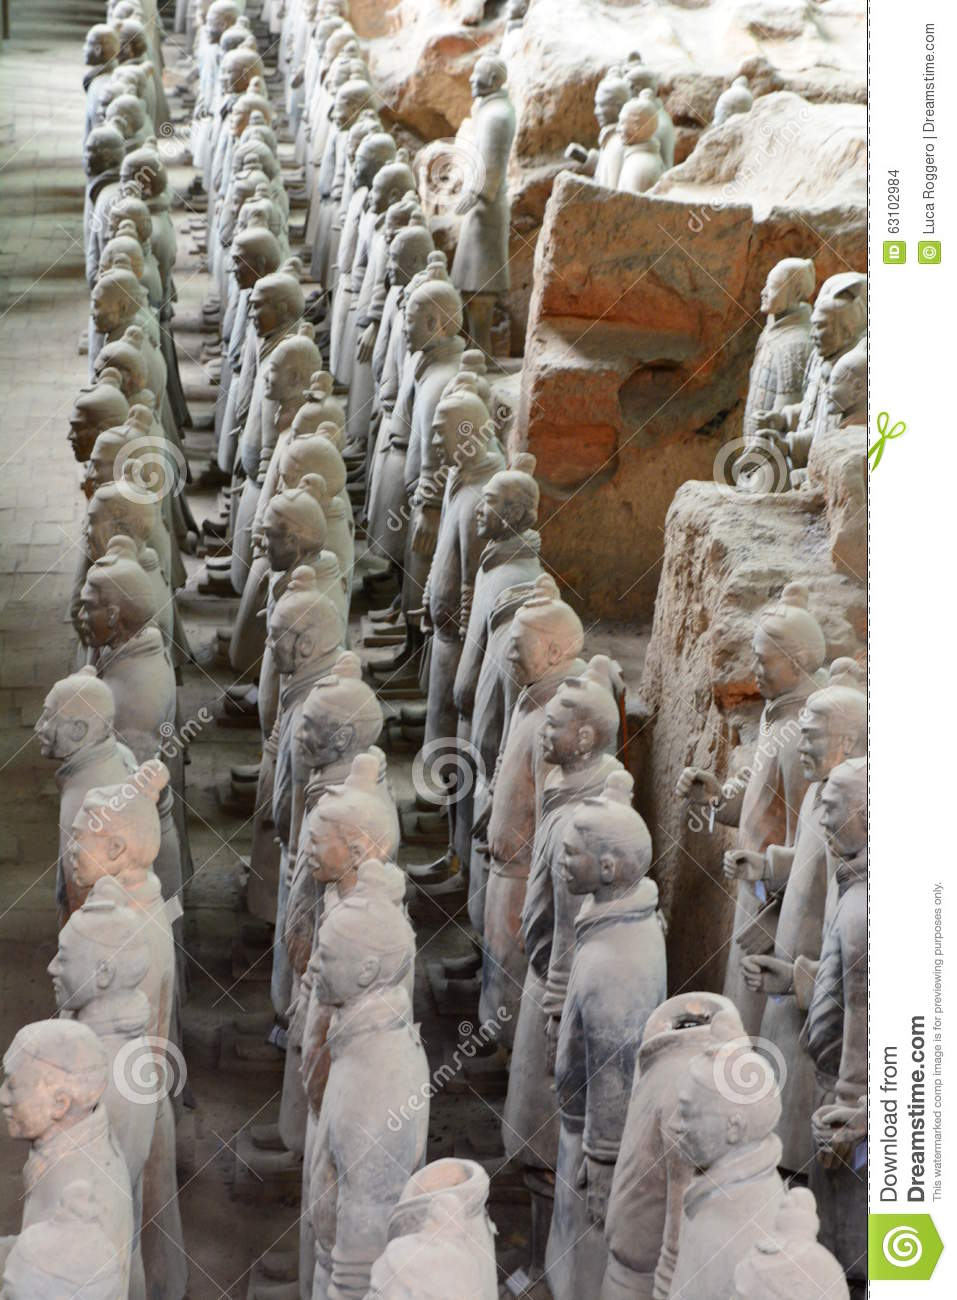 unearthing the site of the terracotta army in the shaanxi province of china Full day private tour of the terracotta army in xi'an xi'an is the capital of shaanxi province and was the fabled xi'an is unlike any major city in china.